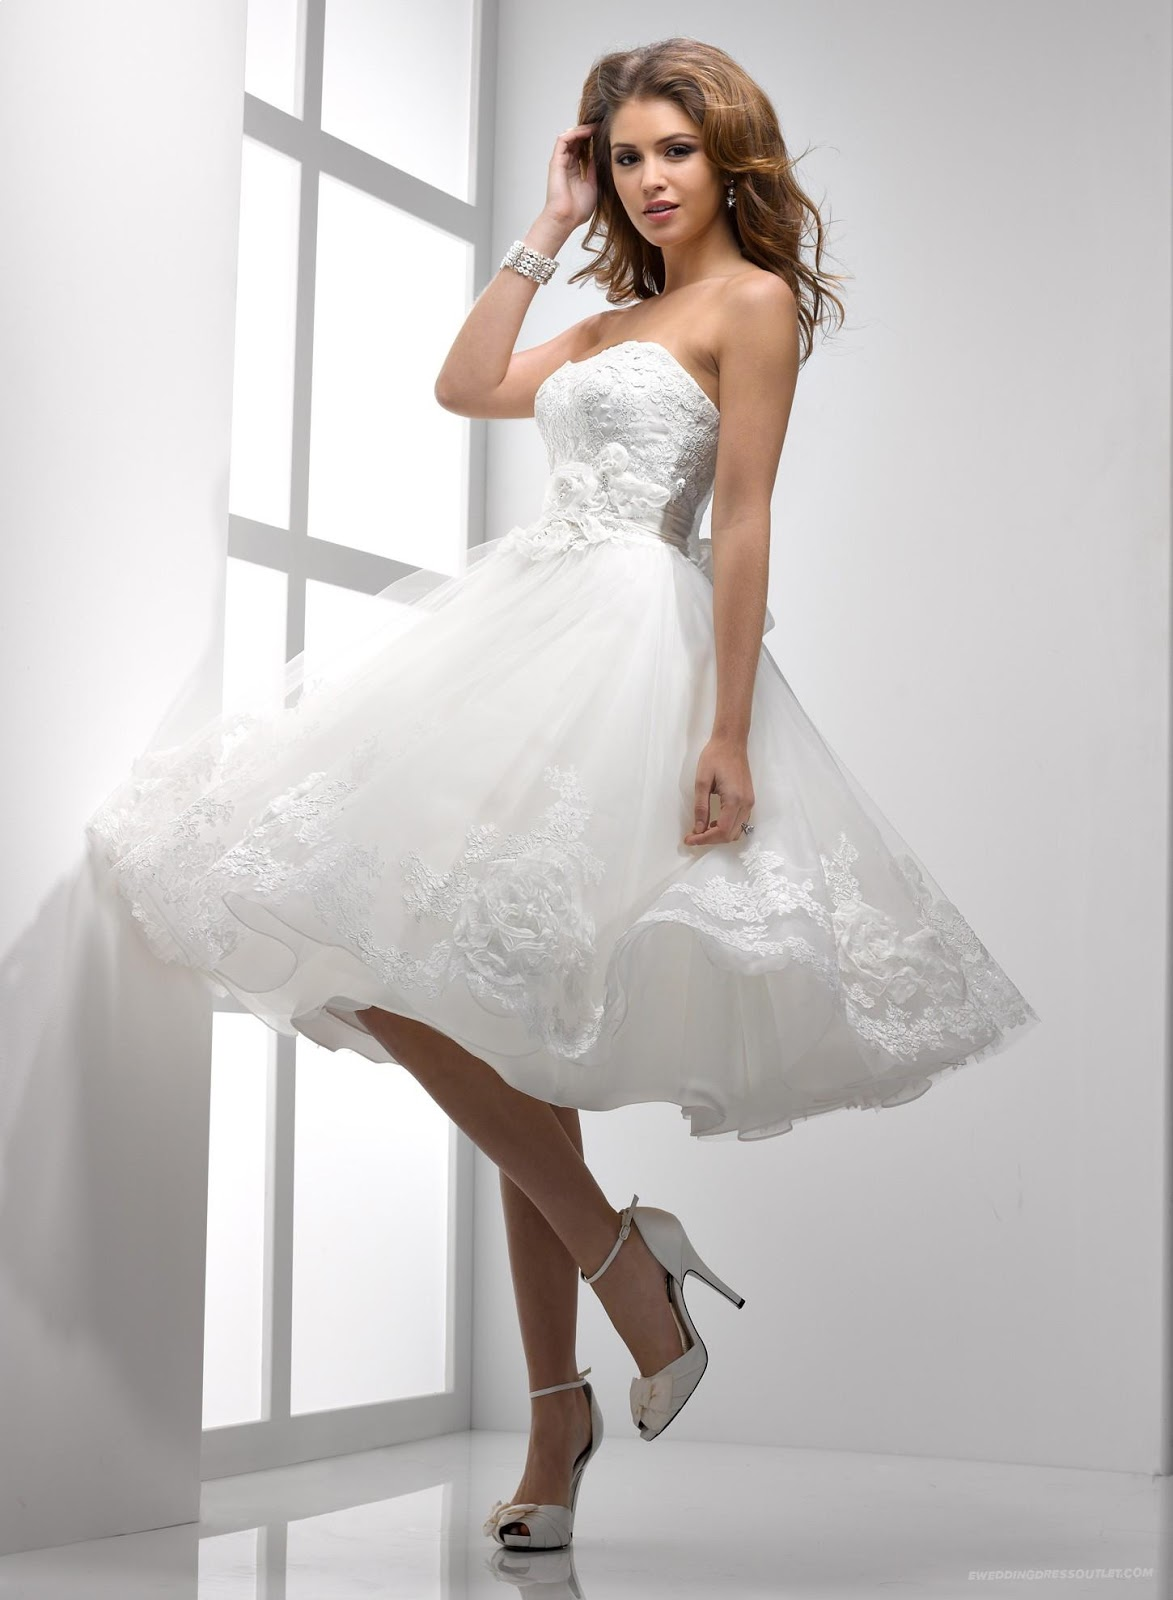 Wedding Dress For Short Brides : Ok wedding gallery perfect short dresses outdoor